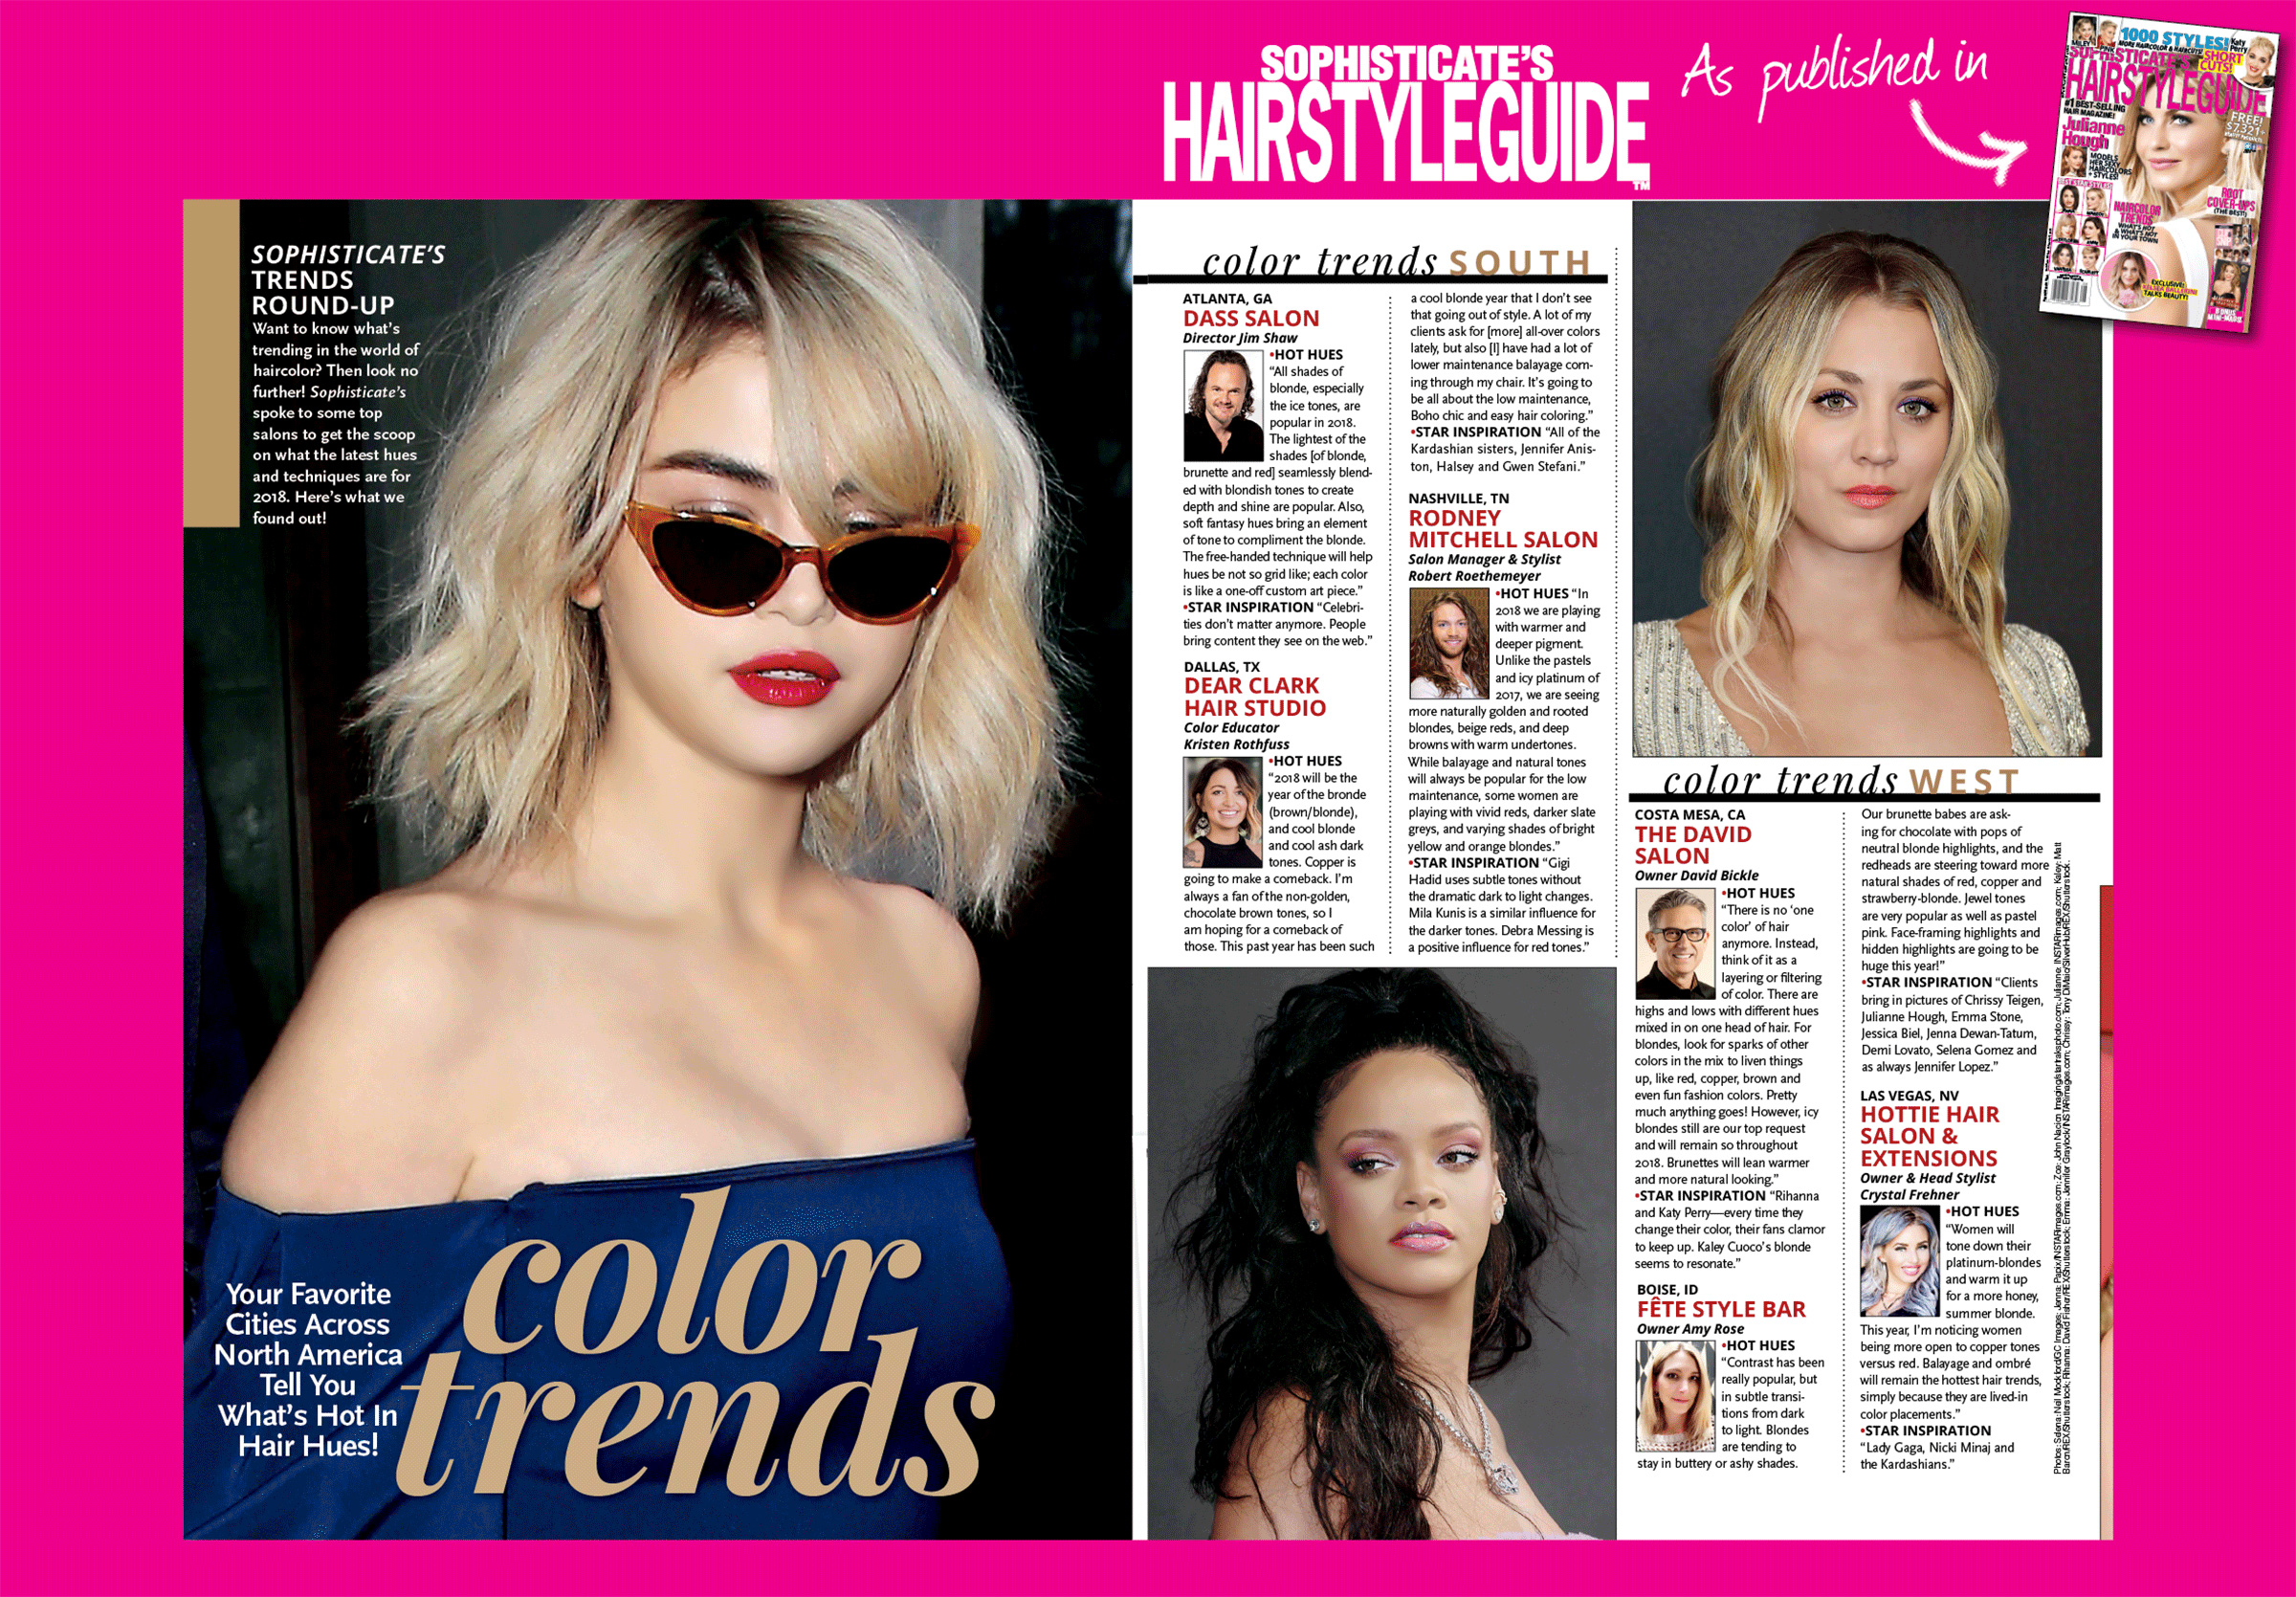 """Check out the Aug. issue of """"Sophisticate's Hairstyle Guide"""" to see the hot trends for 2018, featuring salon manager, Robert's, exclusive interview and tips for styles to go for this year! Thanks again to """"Sophisticate's"""" for recognizing Robert, showing that his hard work is truly paying off!"""